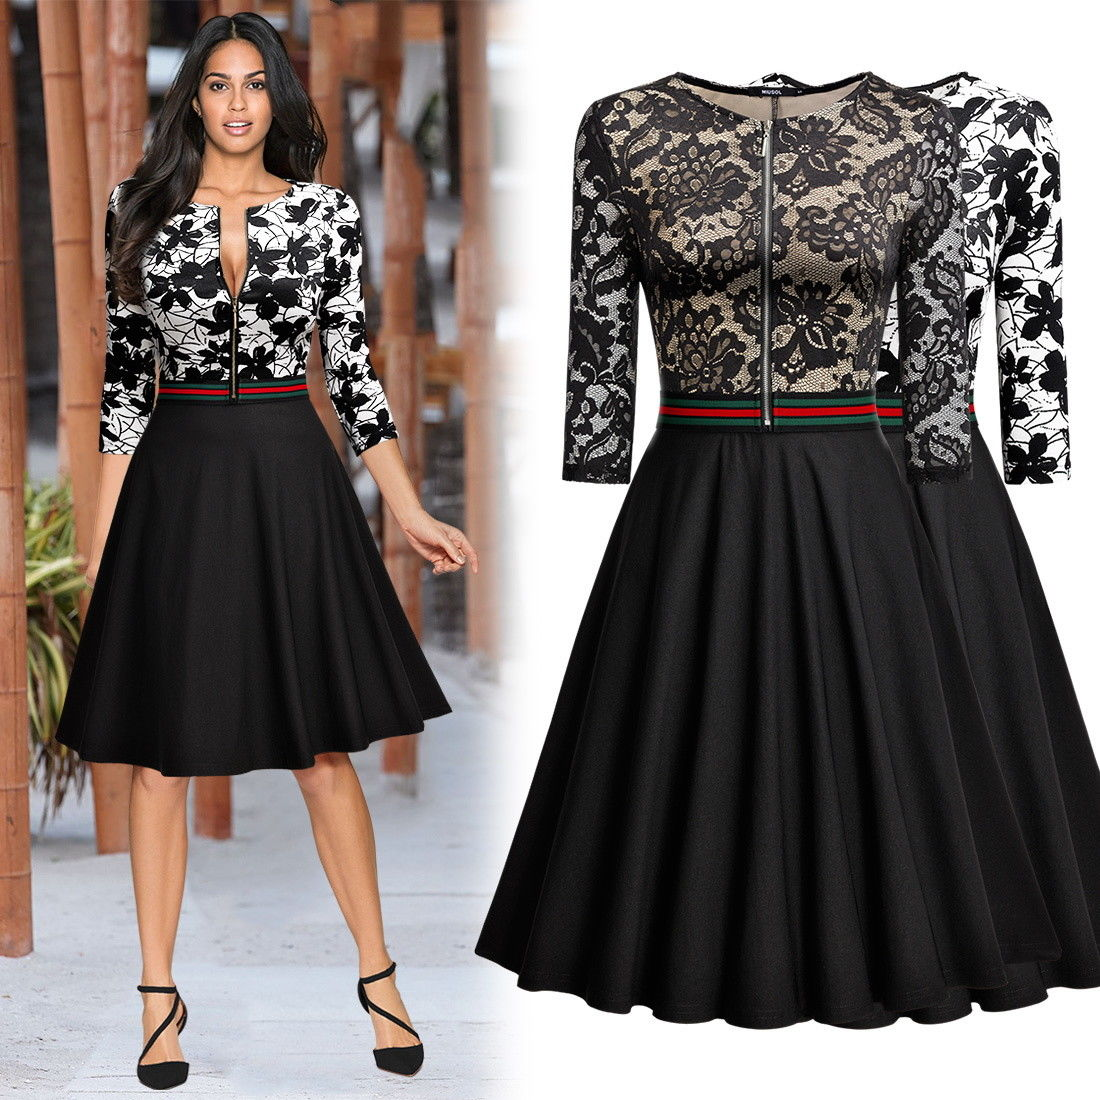 Amazing Women's Retro Style Floral Lace Evening Party ...